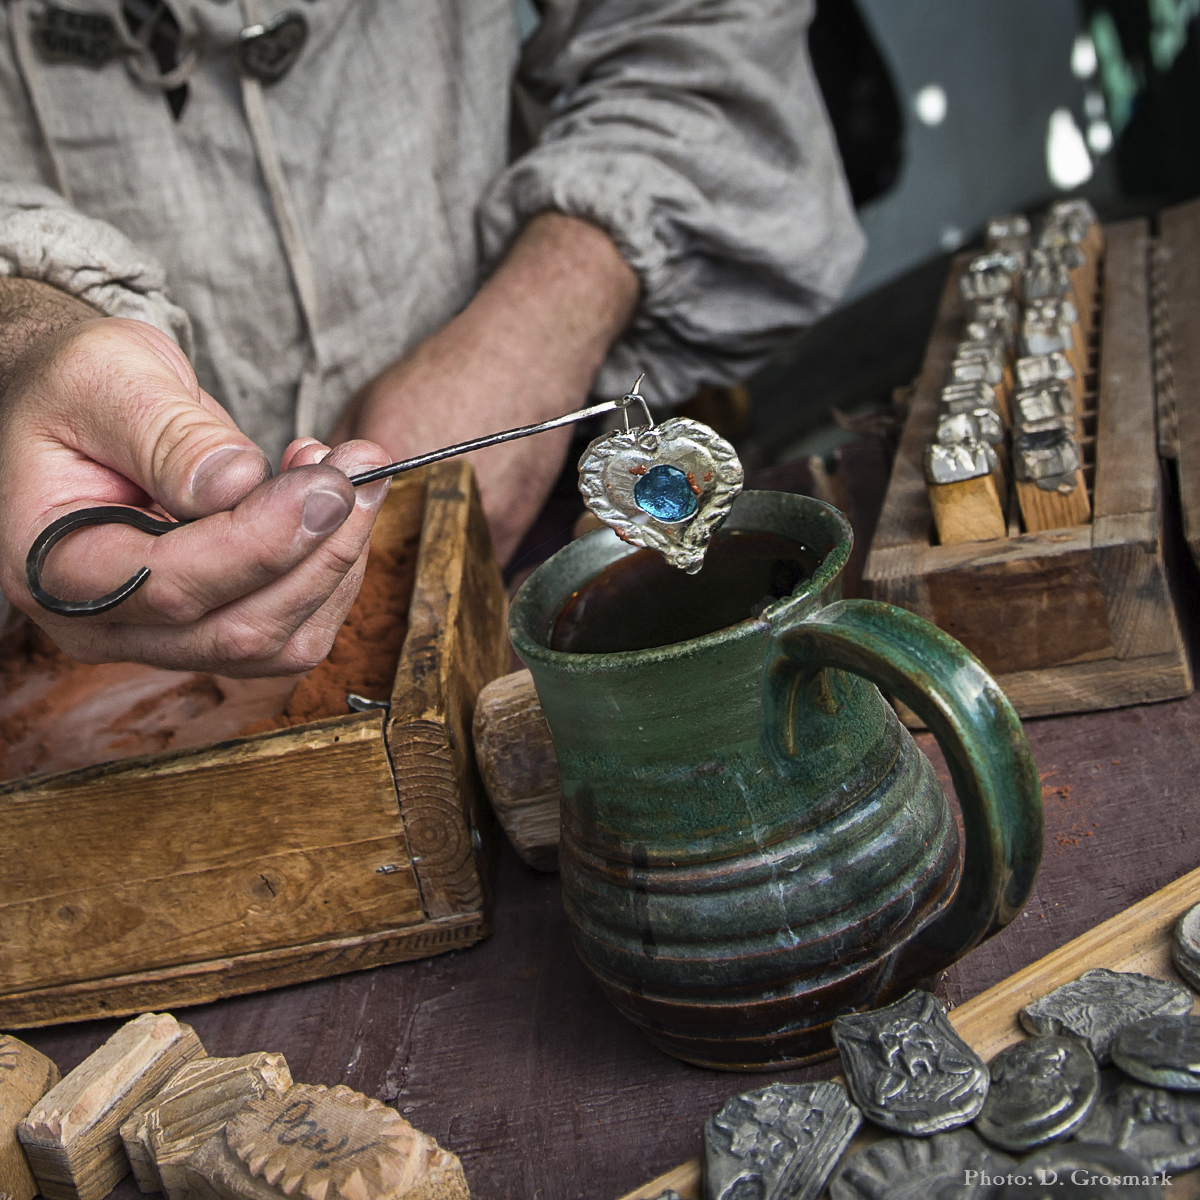 Theme Weekend: Marketplace Weekend merchant vendor artisan craftsman shopping